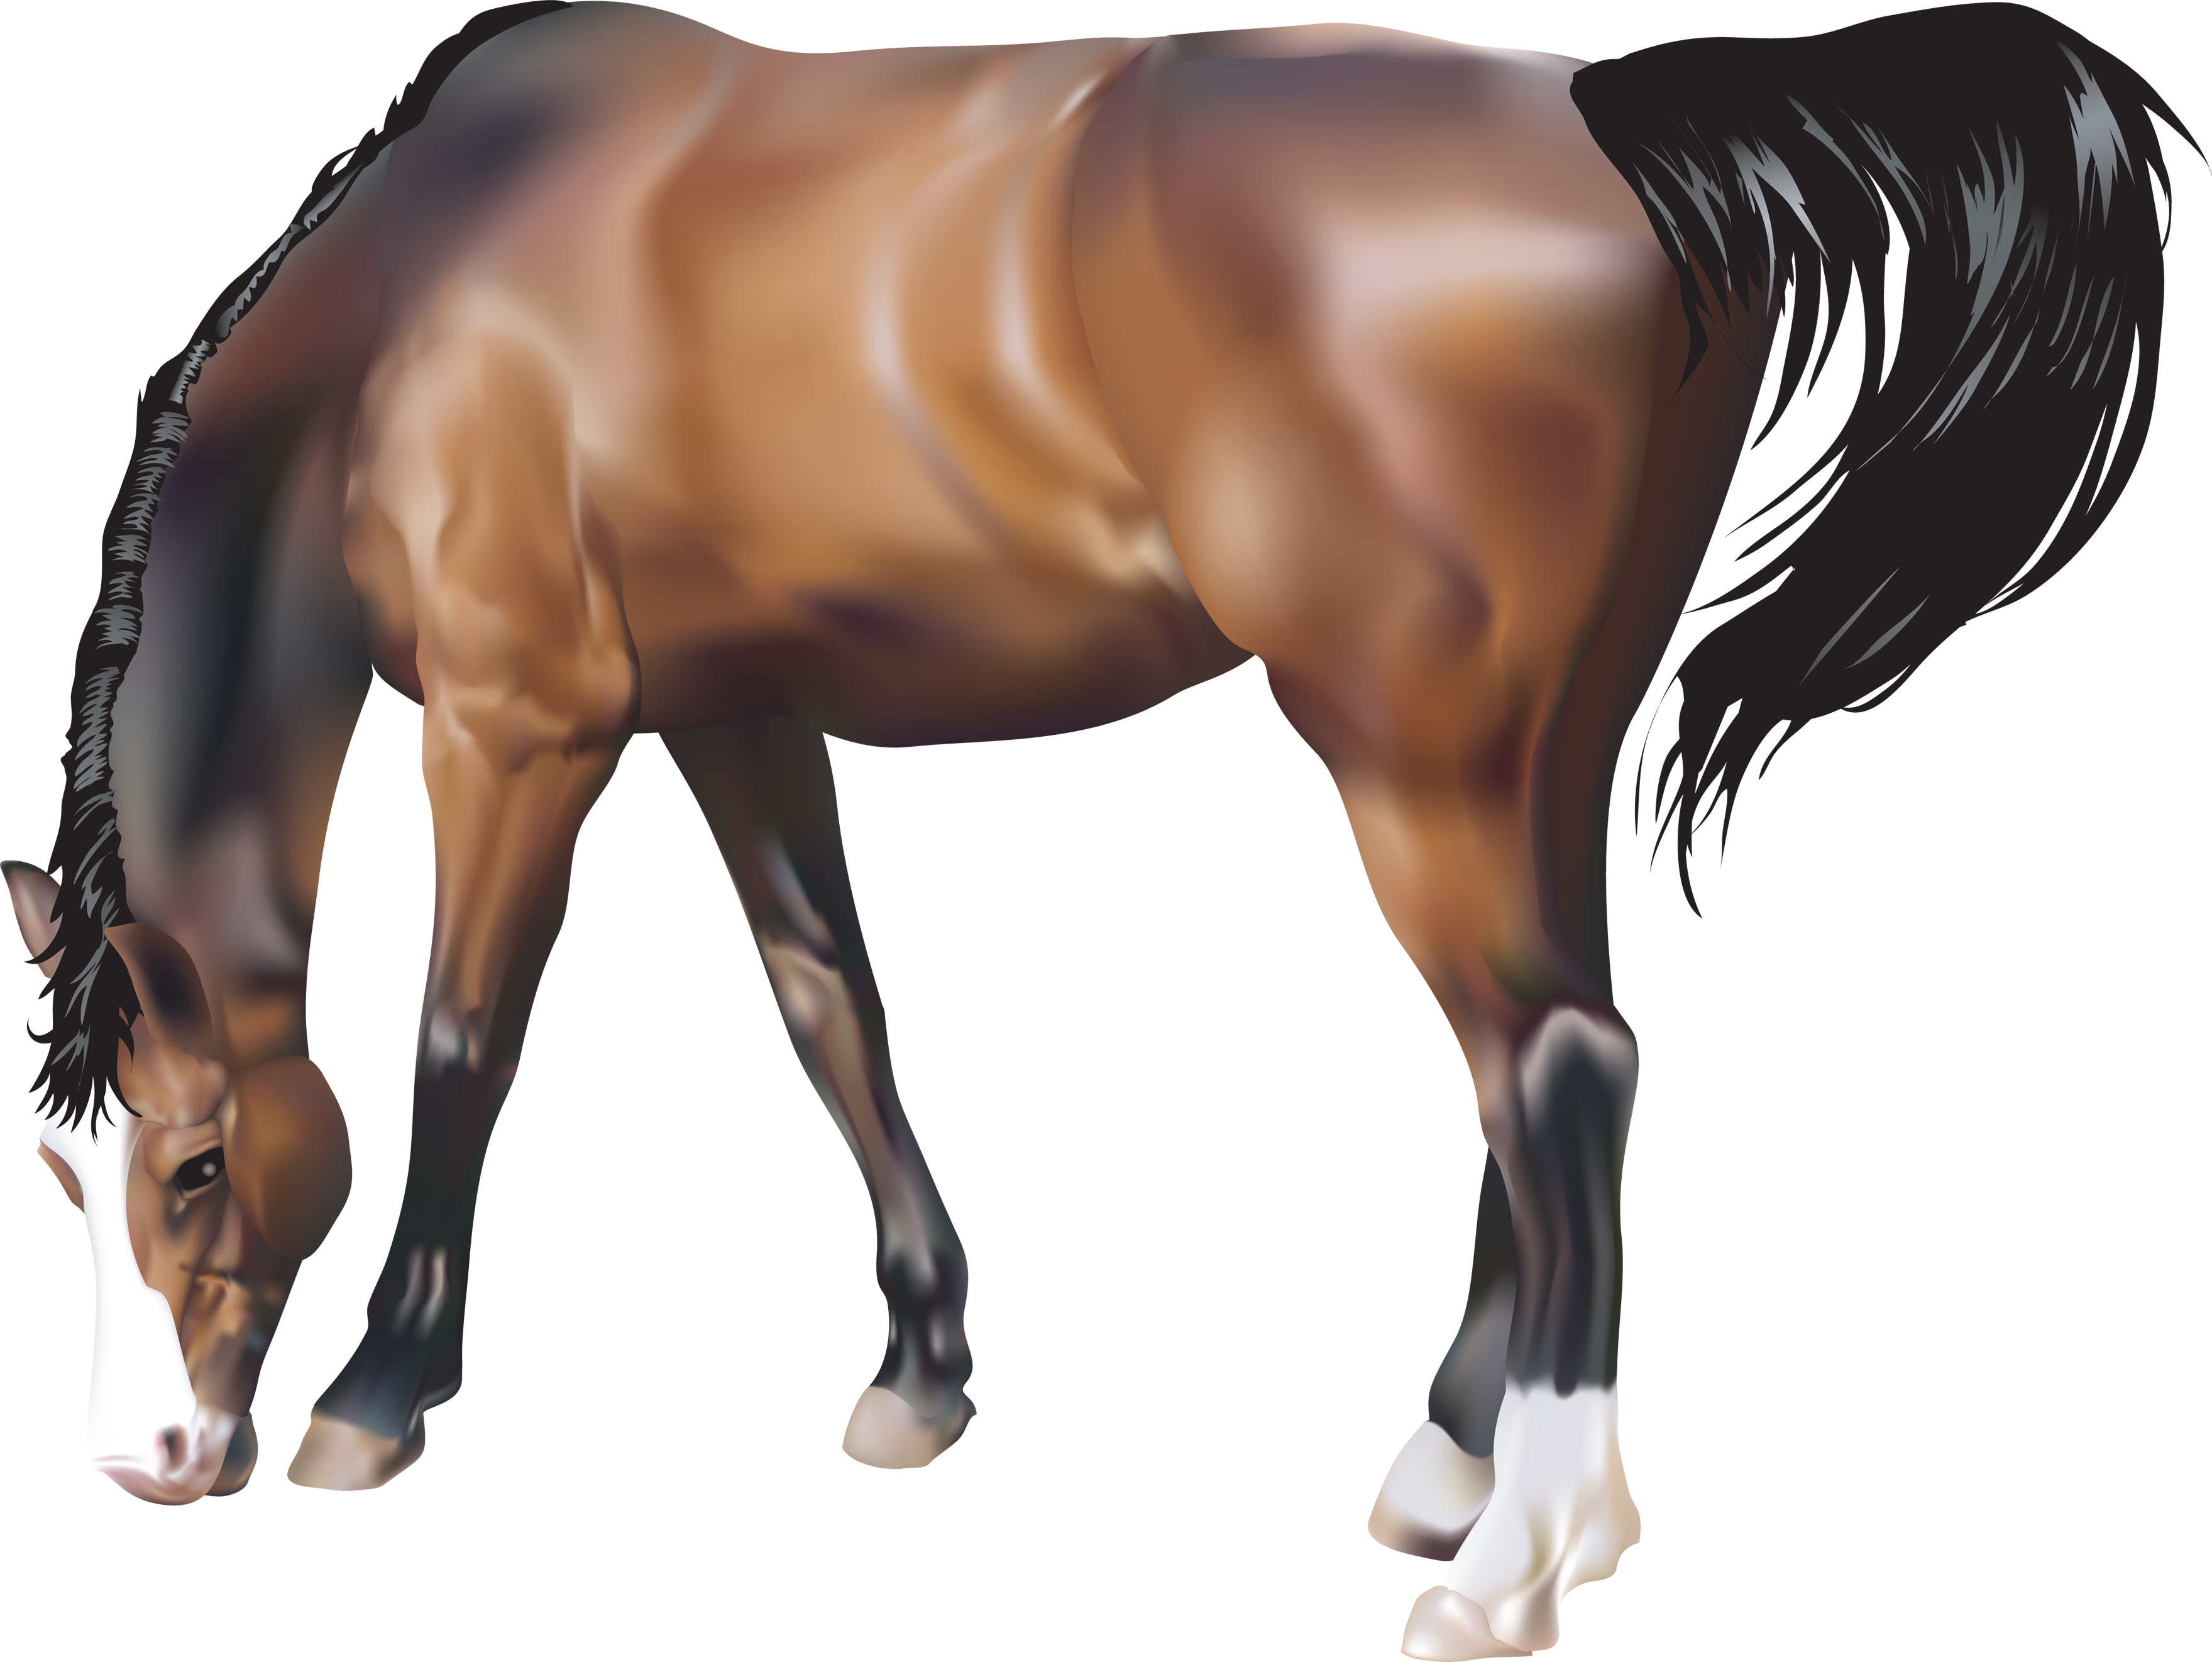 Transparent horses translucent. Brown horse png image